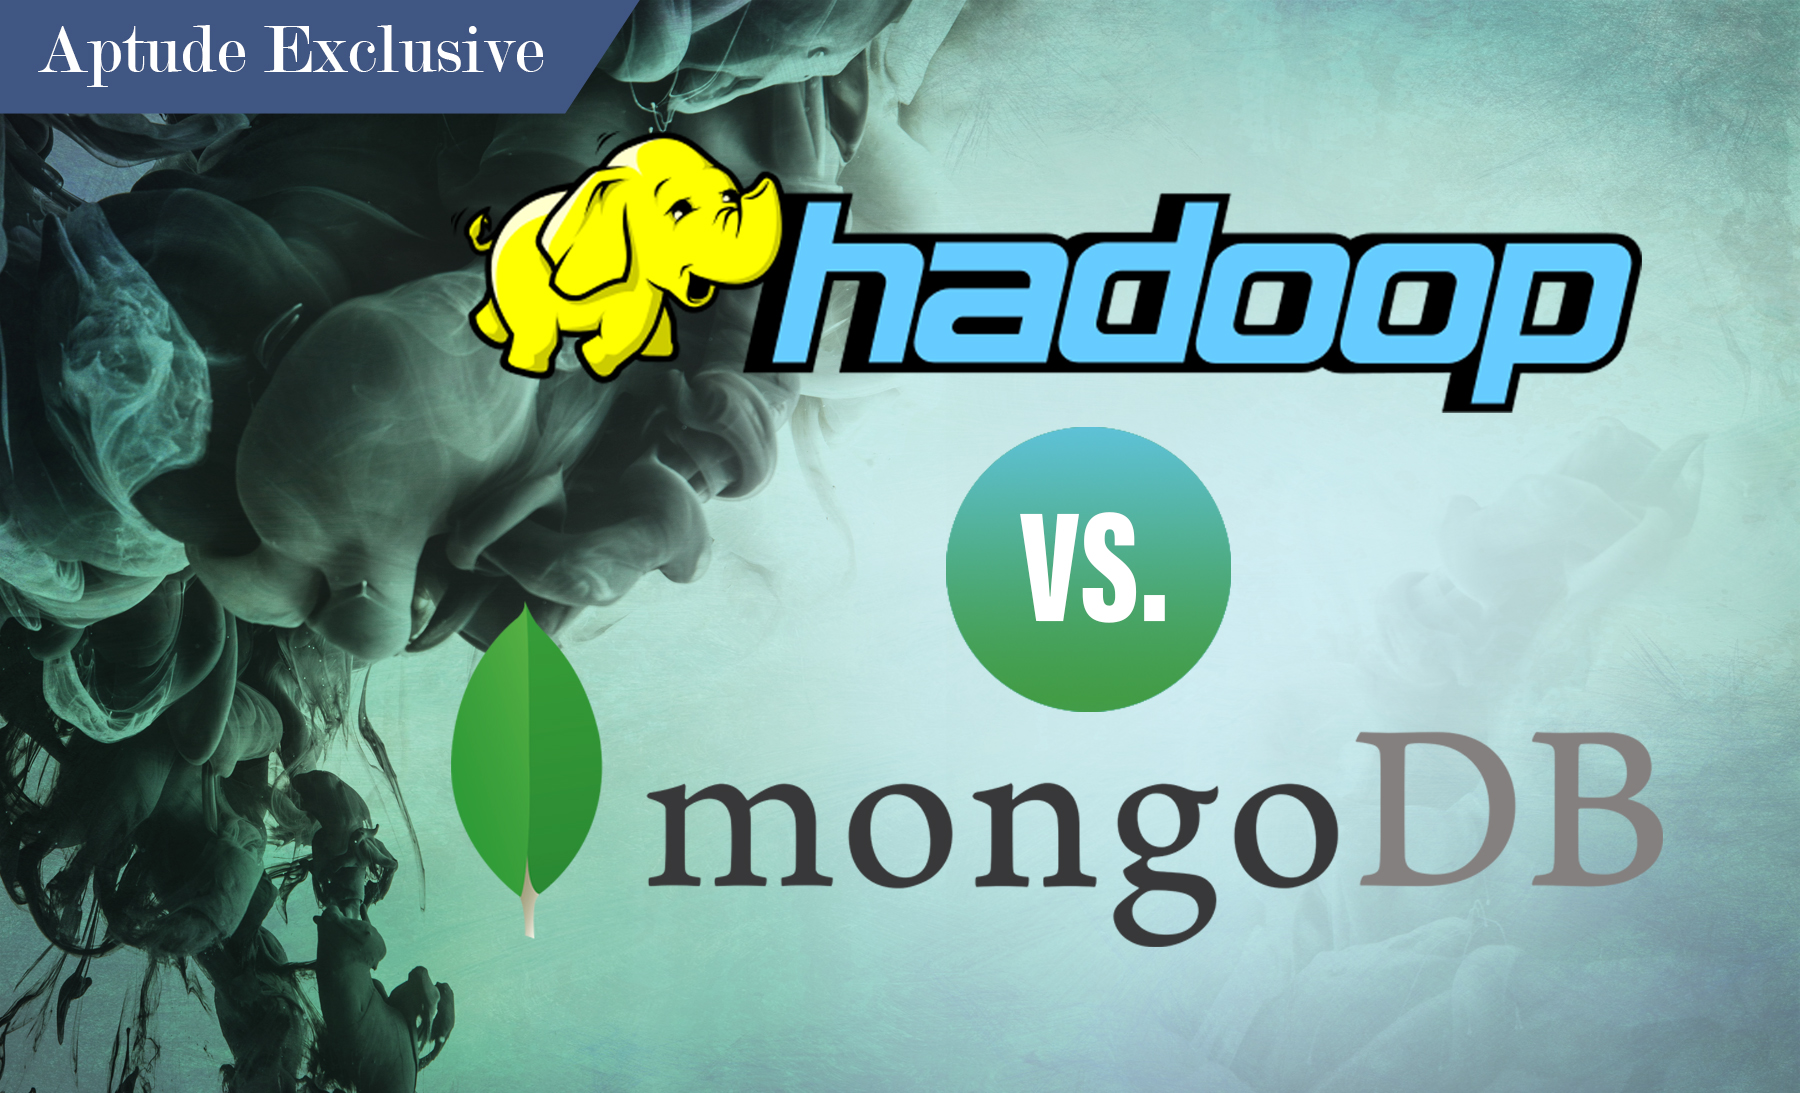 Hadoop Vs  MongoDB: Which Platform is Better for Handling Big Data